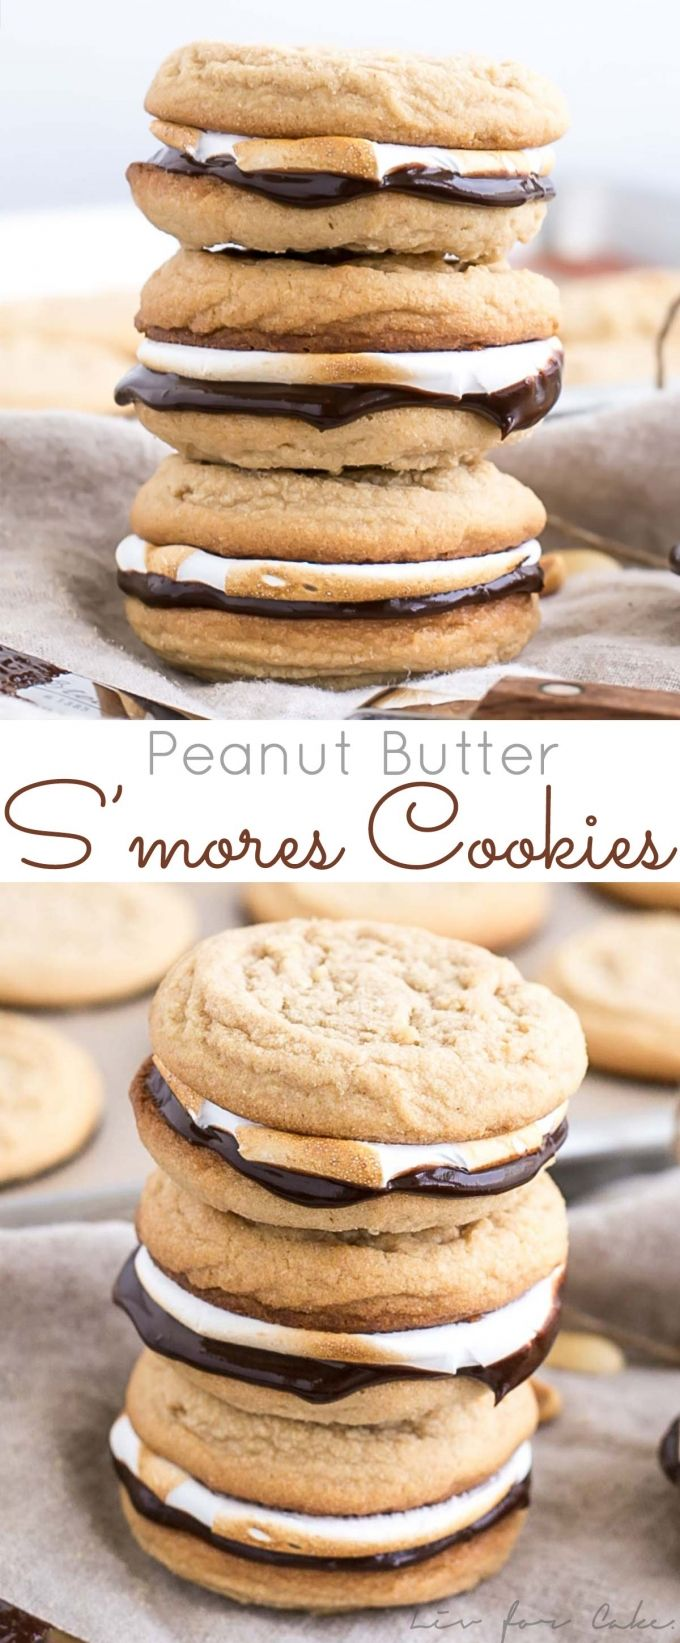 Peanut Butter S'mores Cookies   Liv for Cake